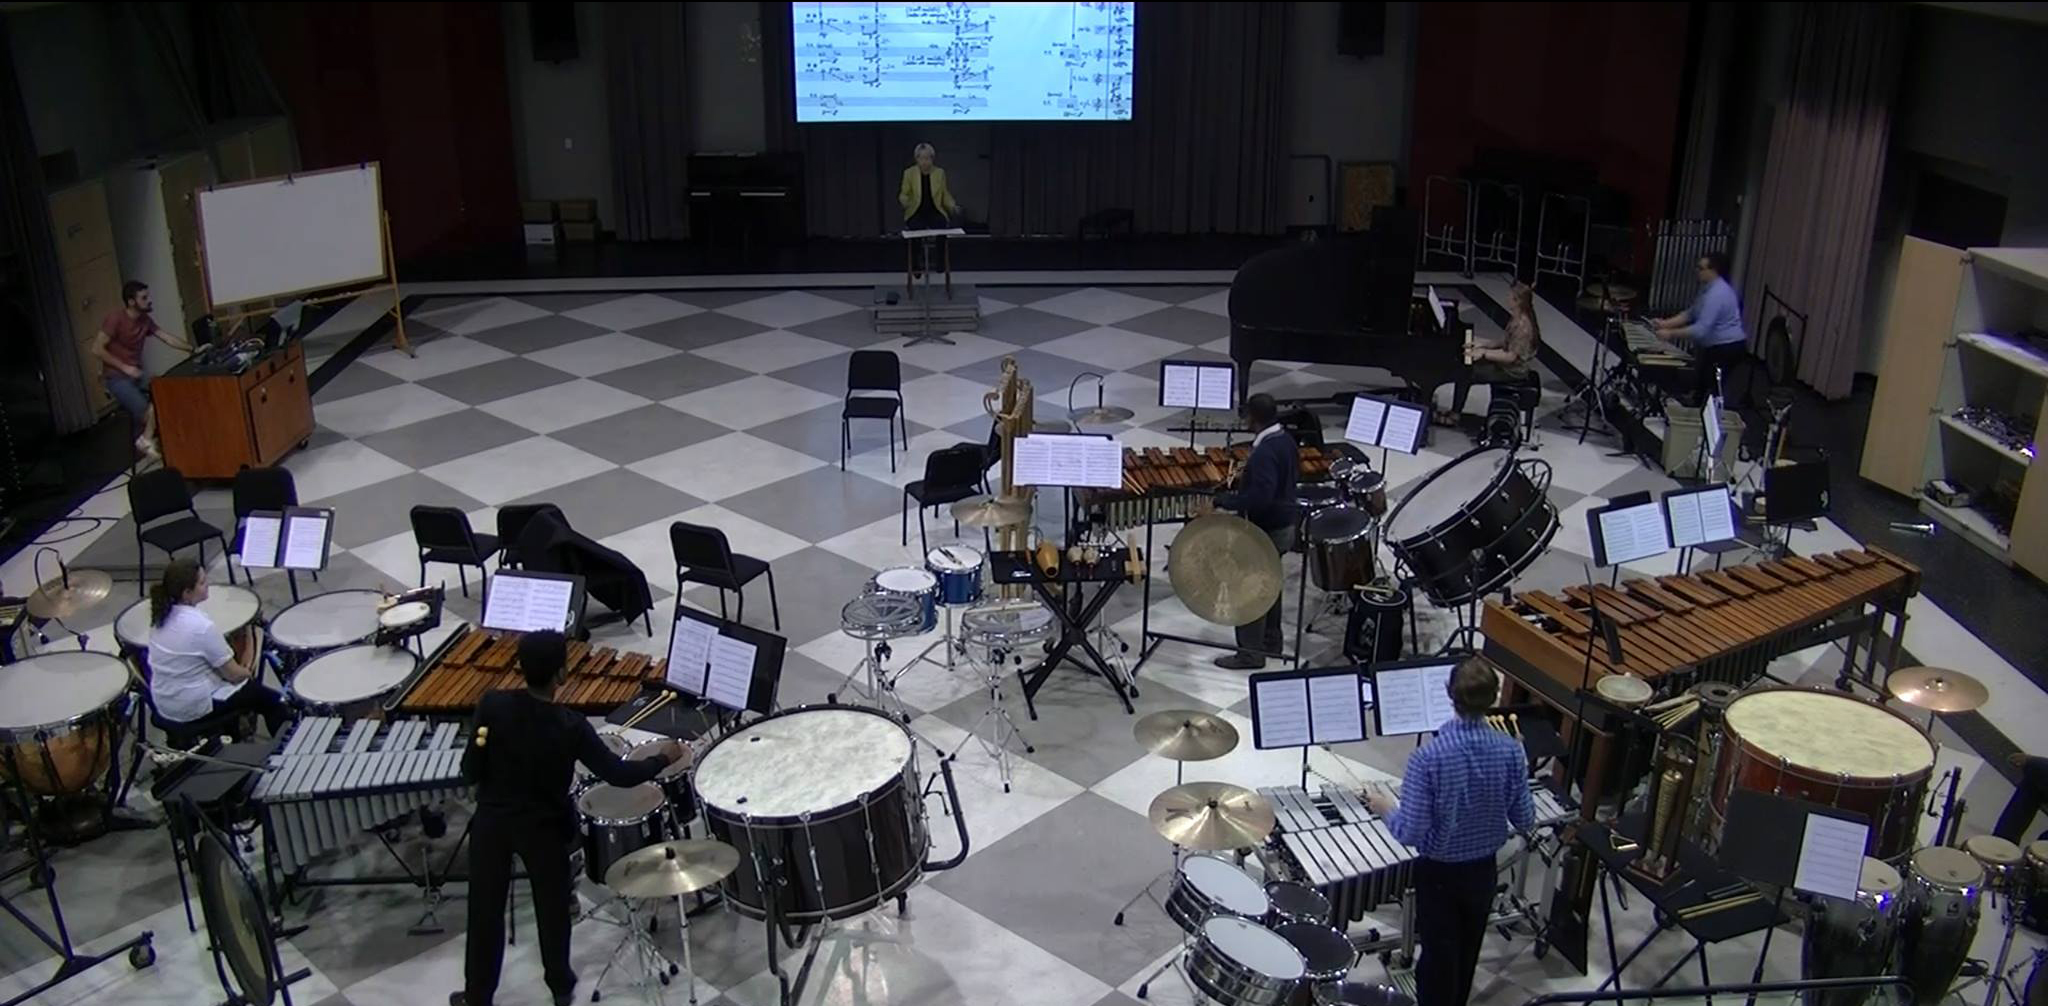 Cynthia Johnston Turner leading a band rehearesal with a score projected on an LED screen in back of her.